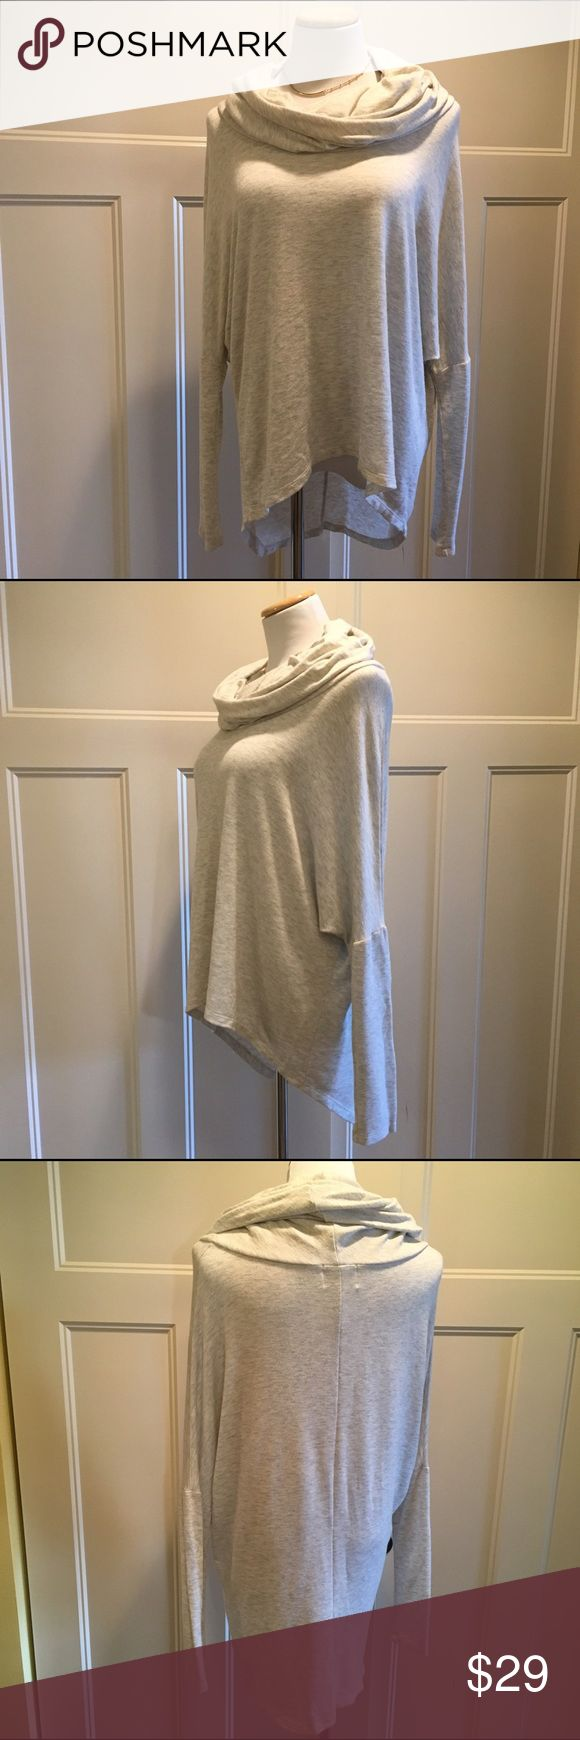 Cream batwing NORDSTROM top cowl neck top Gorgeous like new top. Size tag removed but i wear M\L. So soft & beautiful. Buy with confidence im a suggested user. Madison & Berkeley Tops